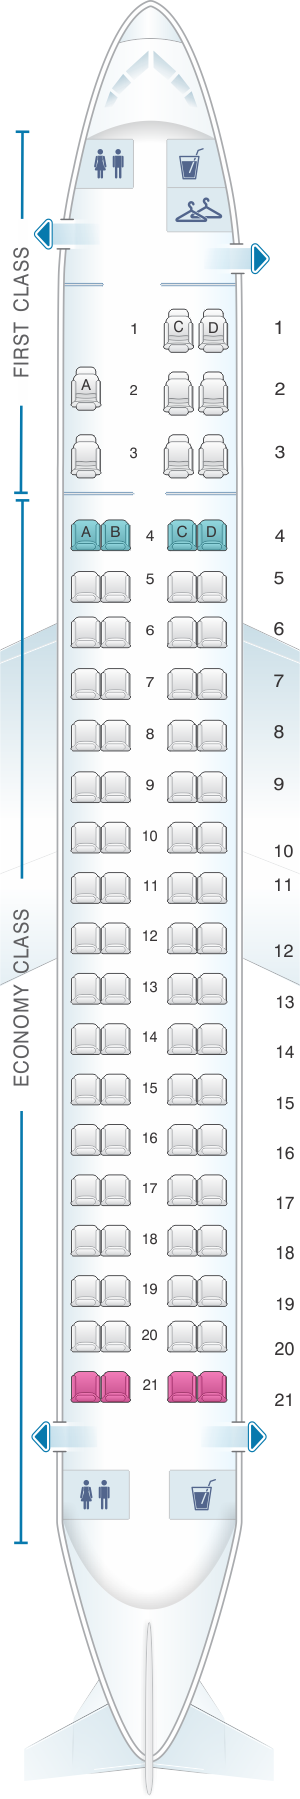 Seat map for American Airlines Embraer ERJ 175 V2